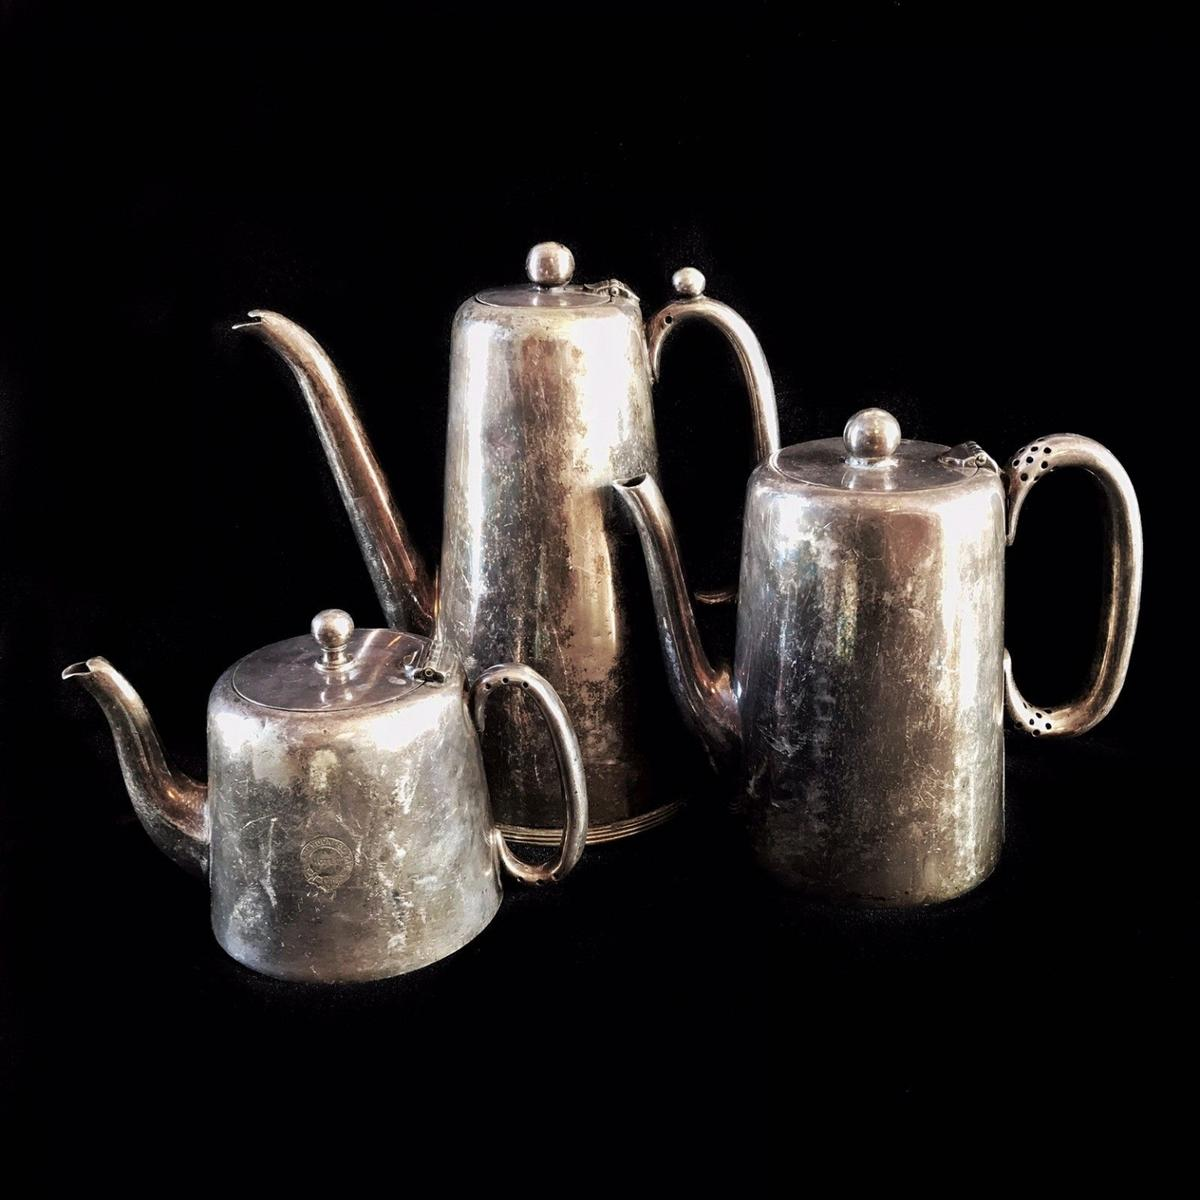 """Antique silver plated set of coffee pot, teapot, chocolate pot. Belonged to the Clarendon Royal Hotel*. The English silver plated lidded pots were used for hotel service. The decorative pieces are a great addition to antique table decor, retro shelf decor, as vintage silver vases for dry flowers composition. The patina gives antique look to the items. Hallmarks include EPNS (Electroplated). h = 10.5 cm (4 1/8"""") h = 15.5 cm (6 1/8"""") h = 21 cm (8 1/4"""") Weight: 1640 g."""